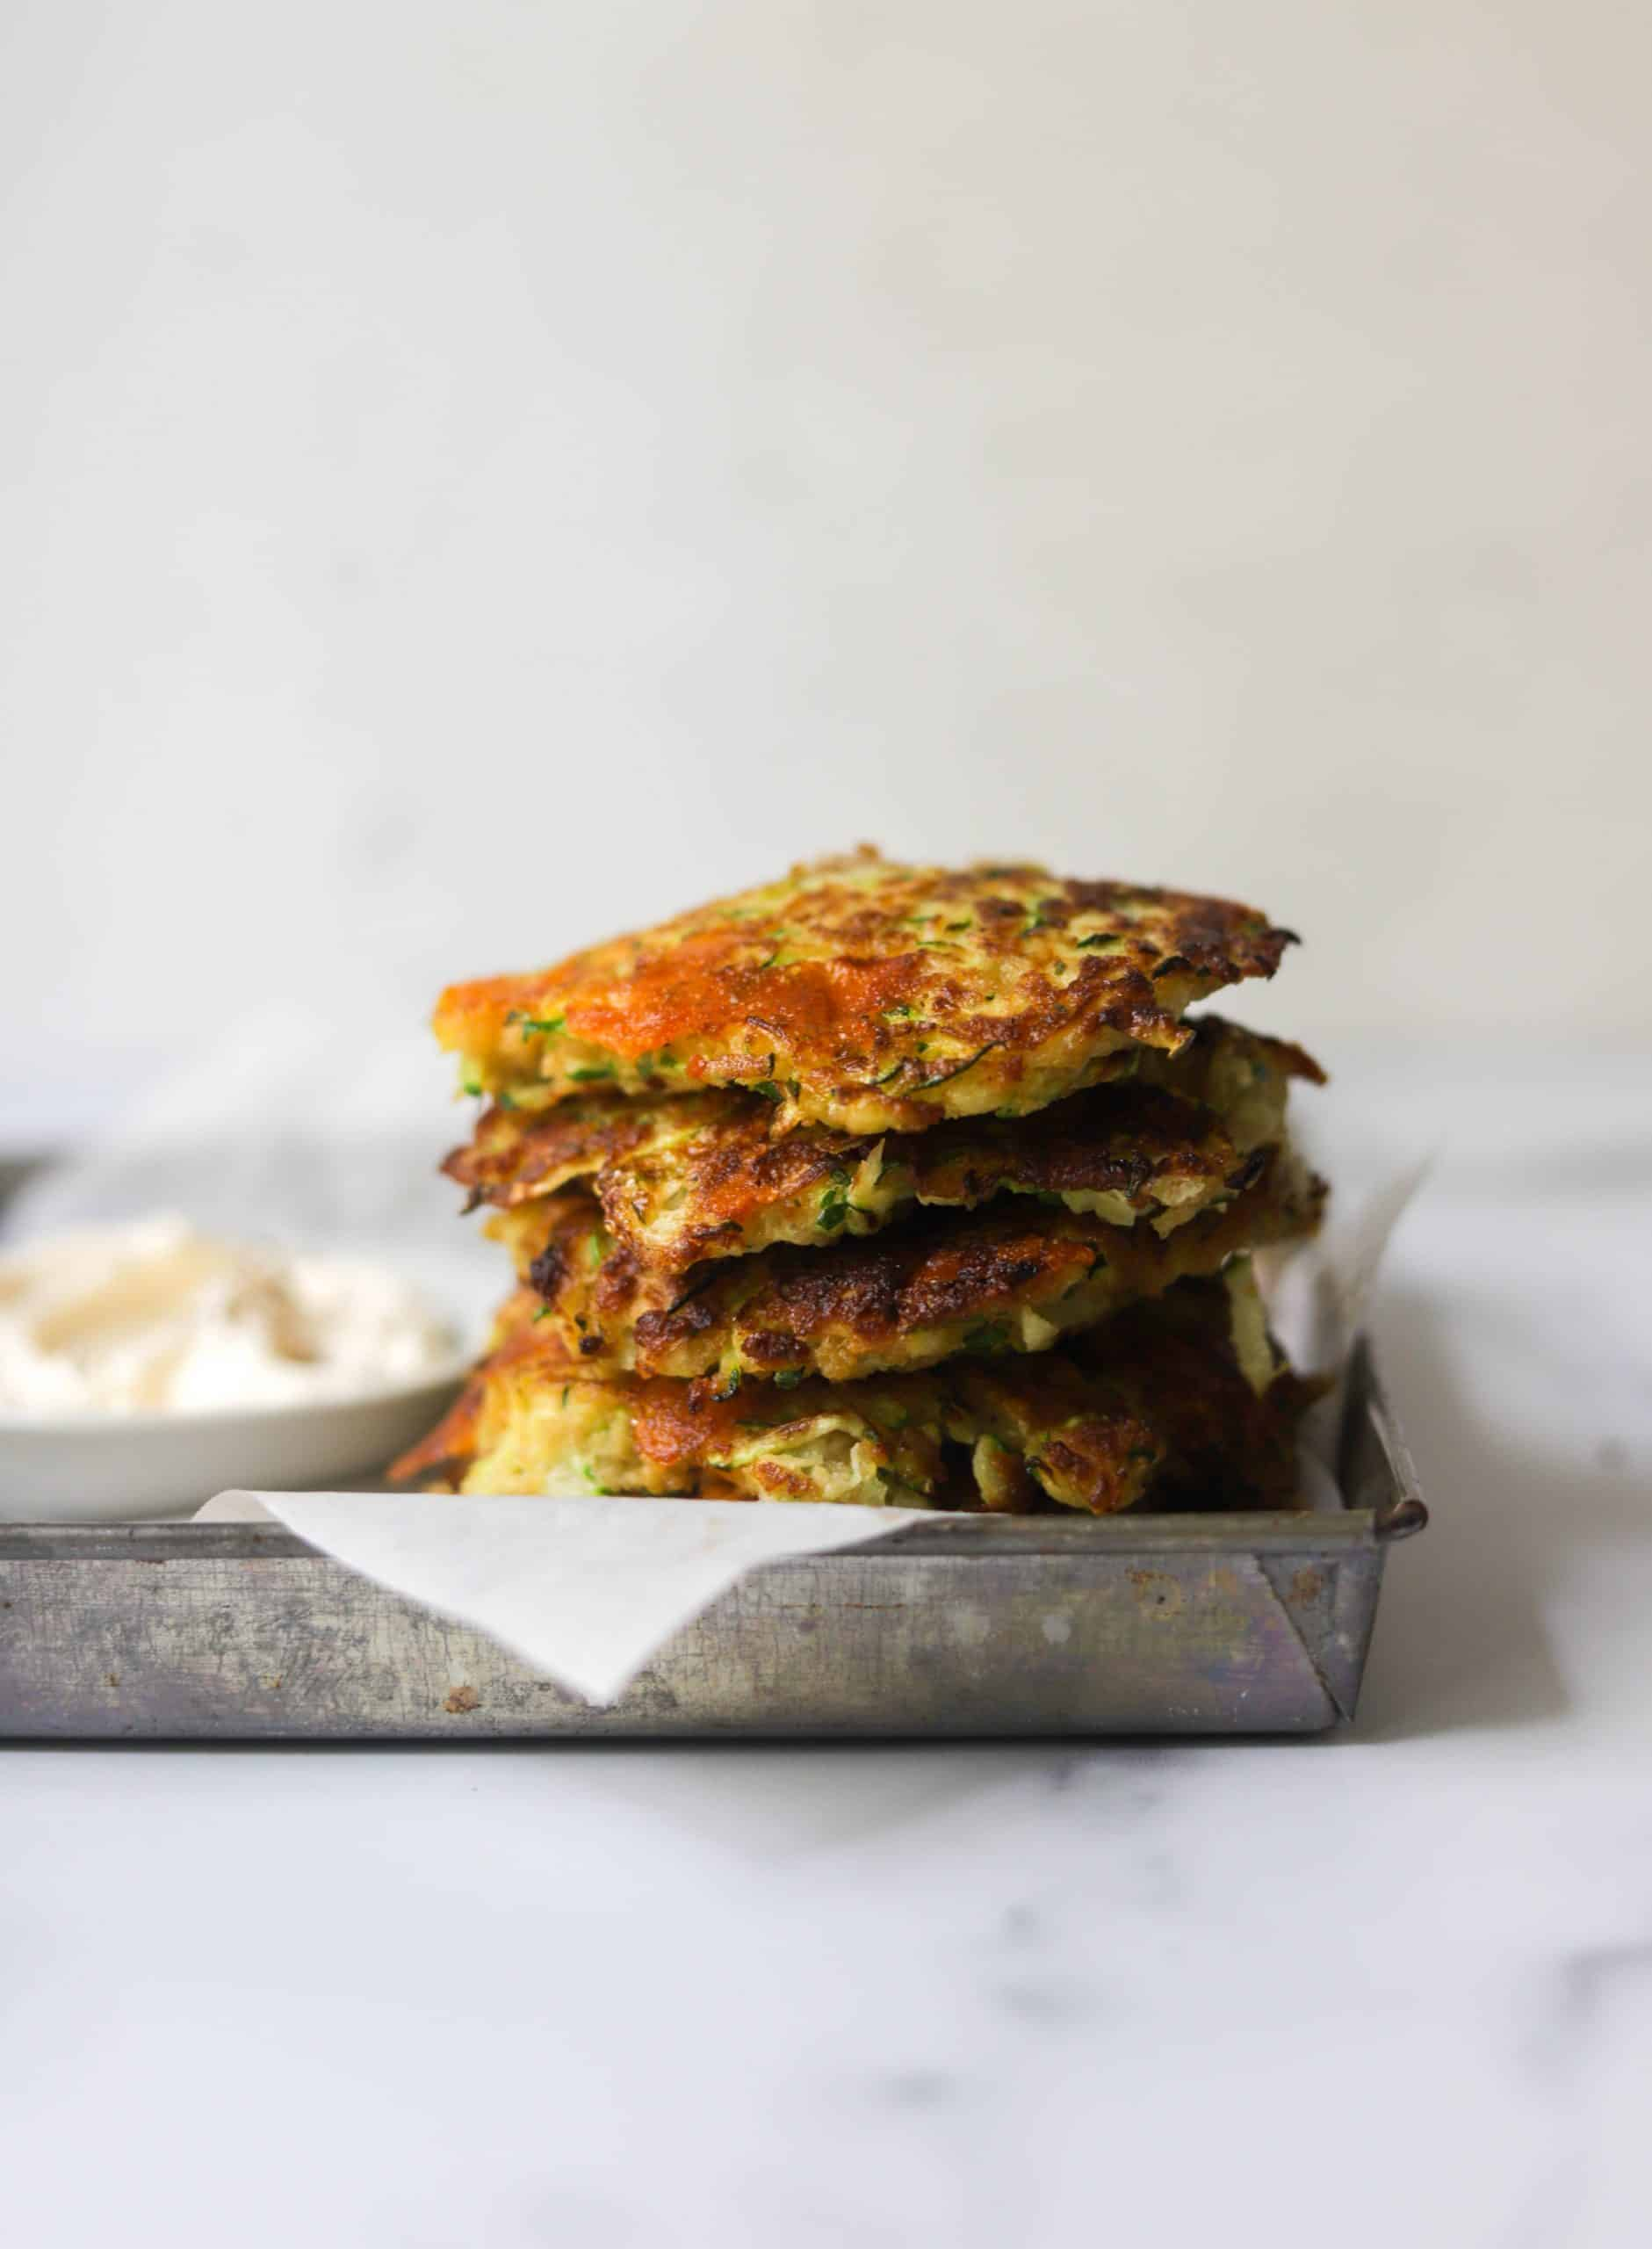 A stack of zucchini fritters on a tray.